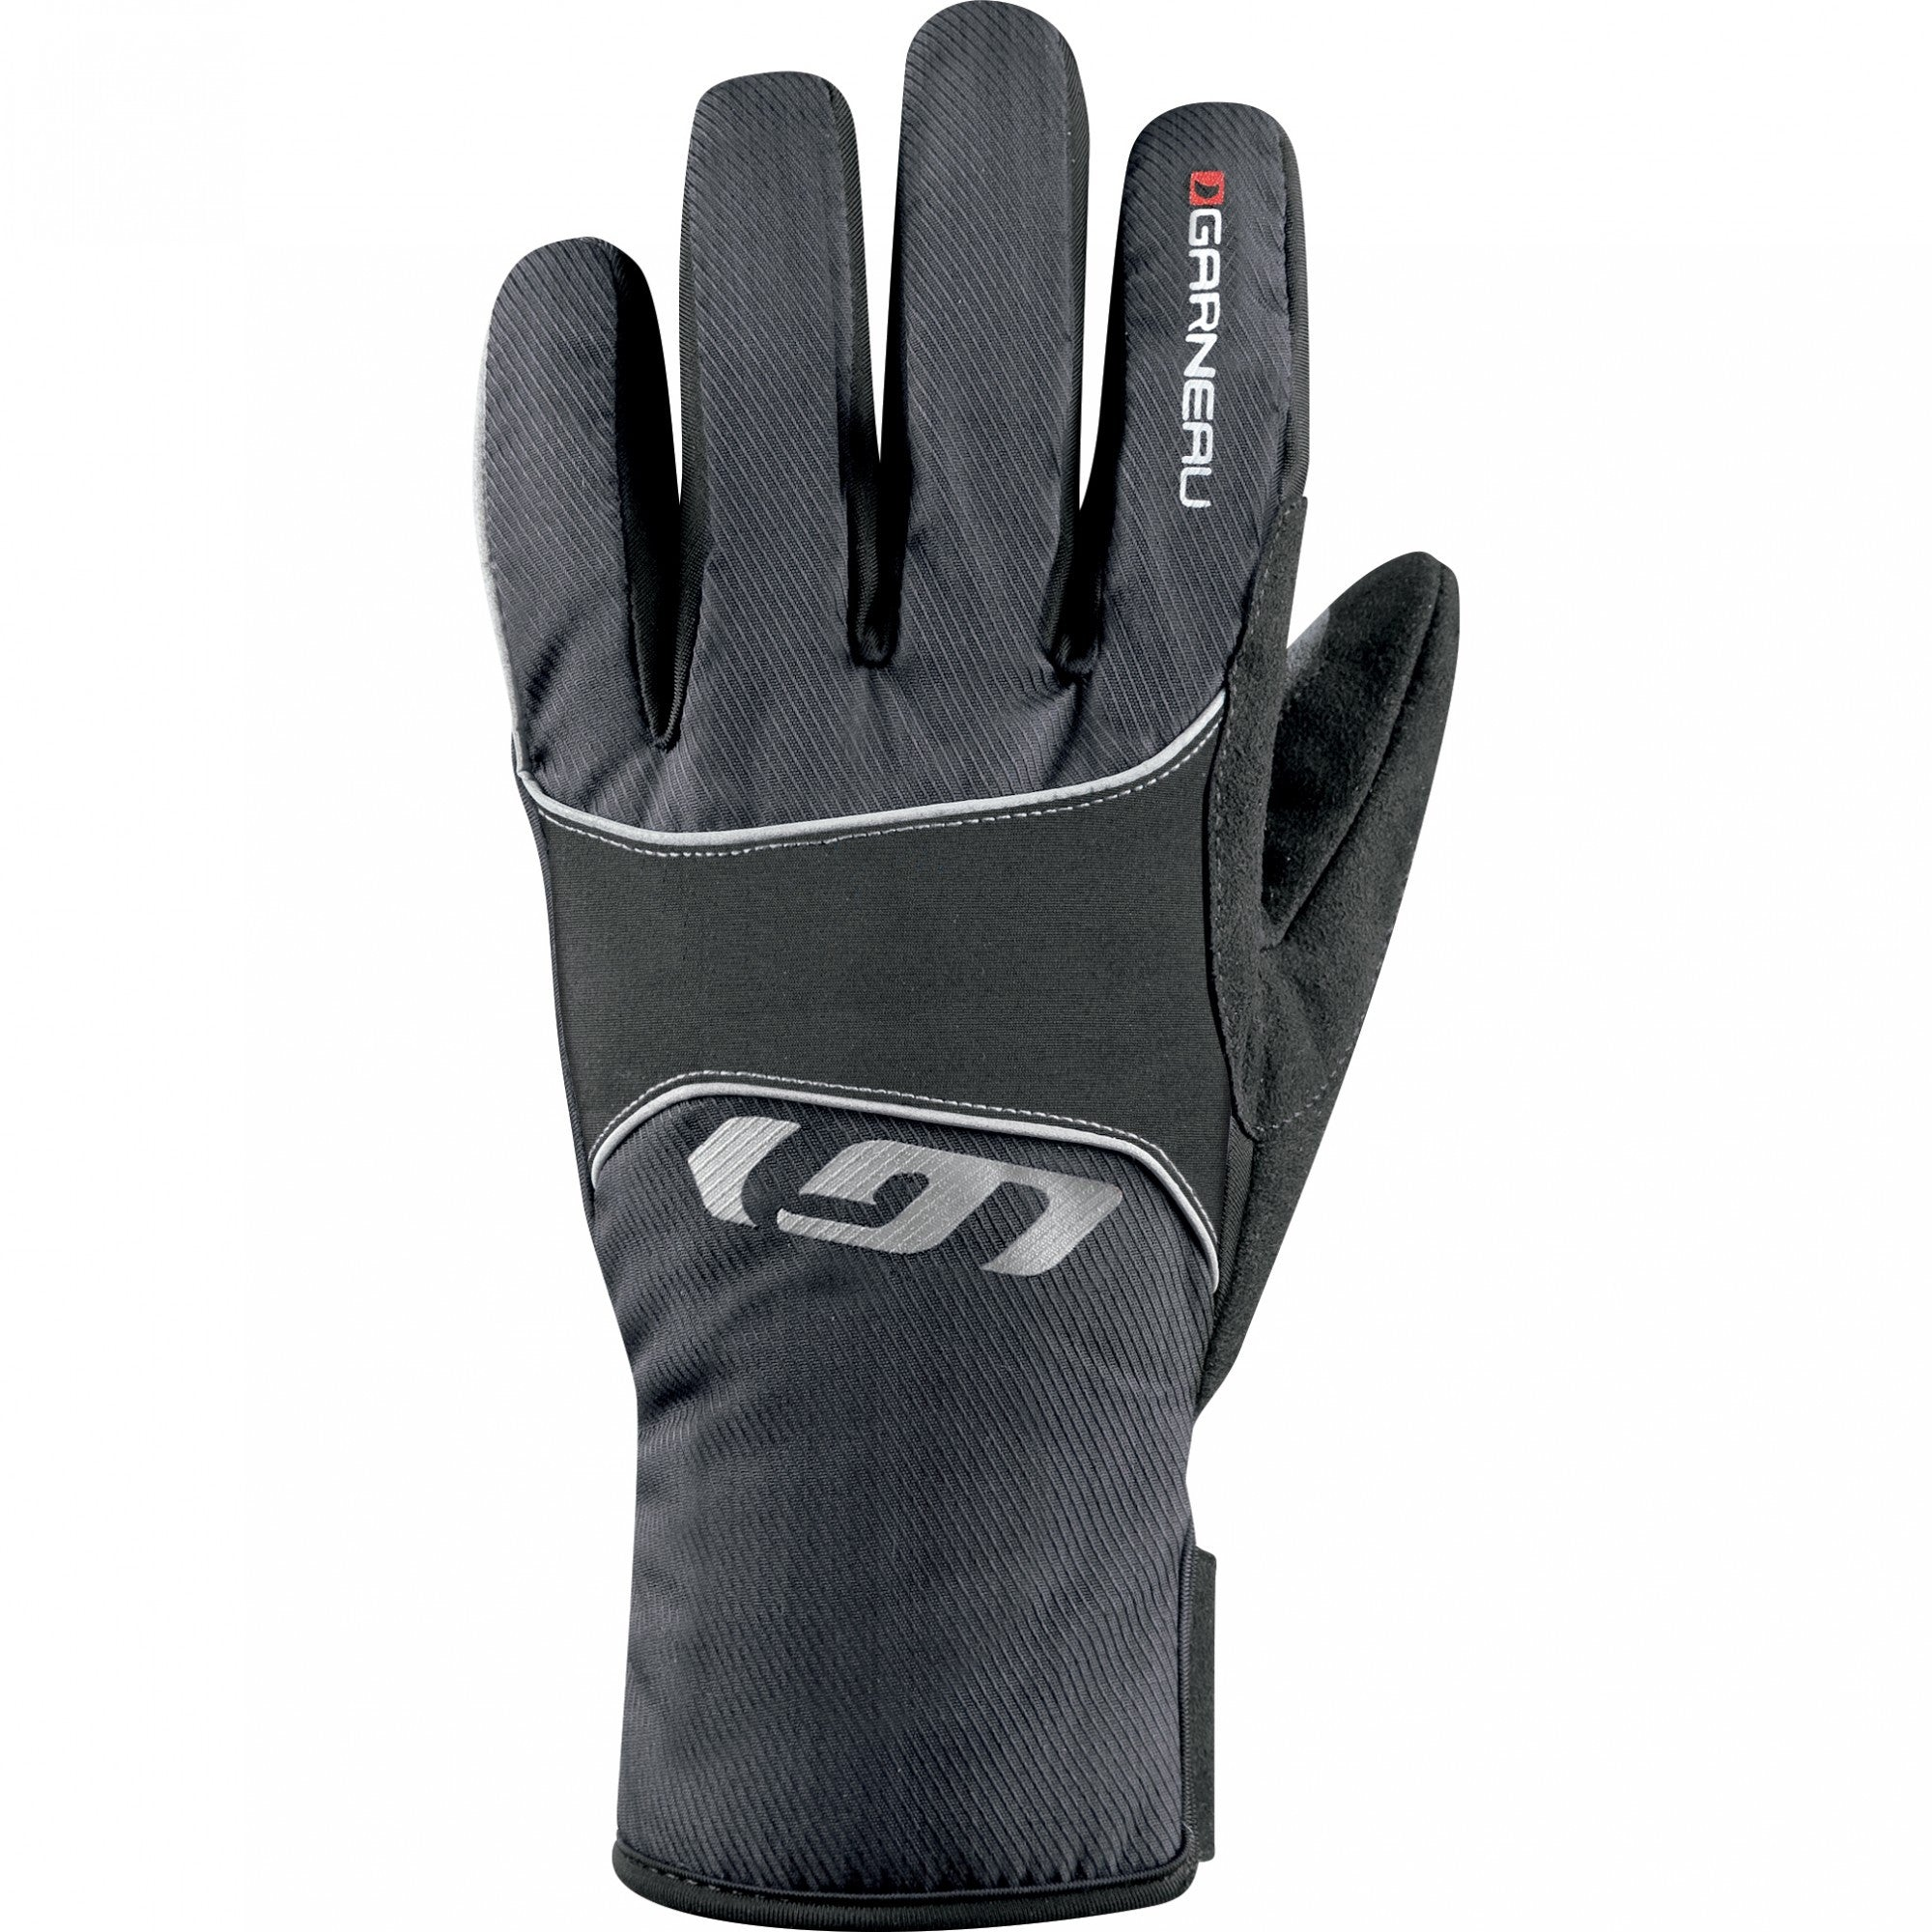 Garneau SHIELD CYCLING GLOVES